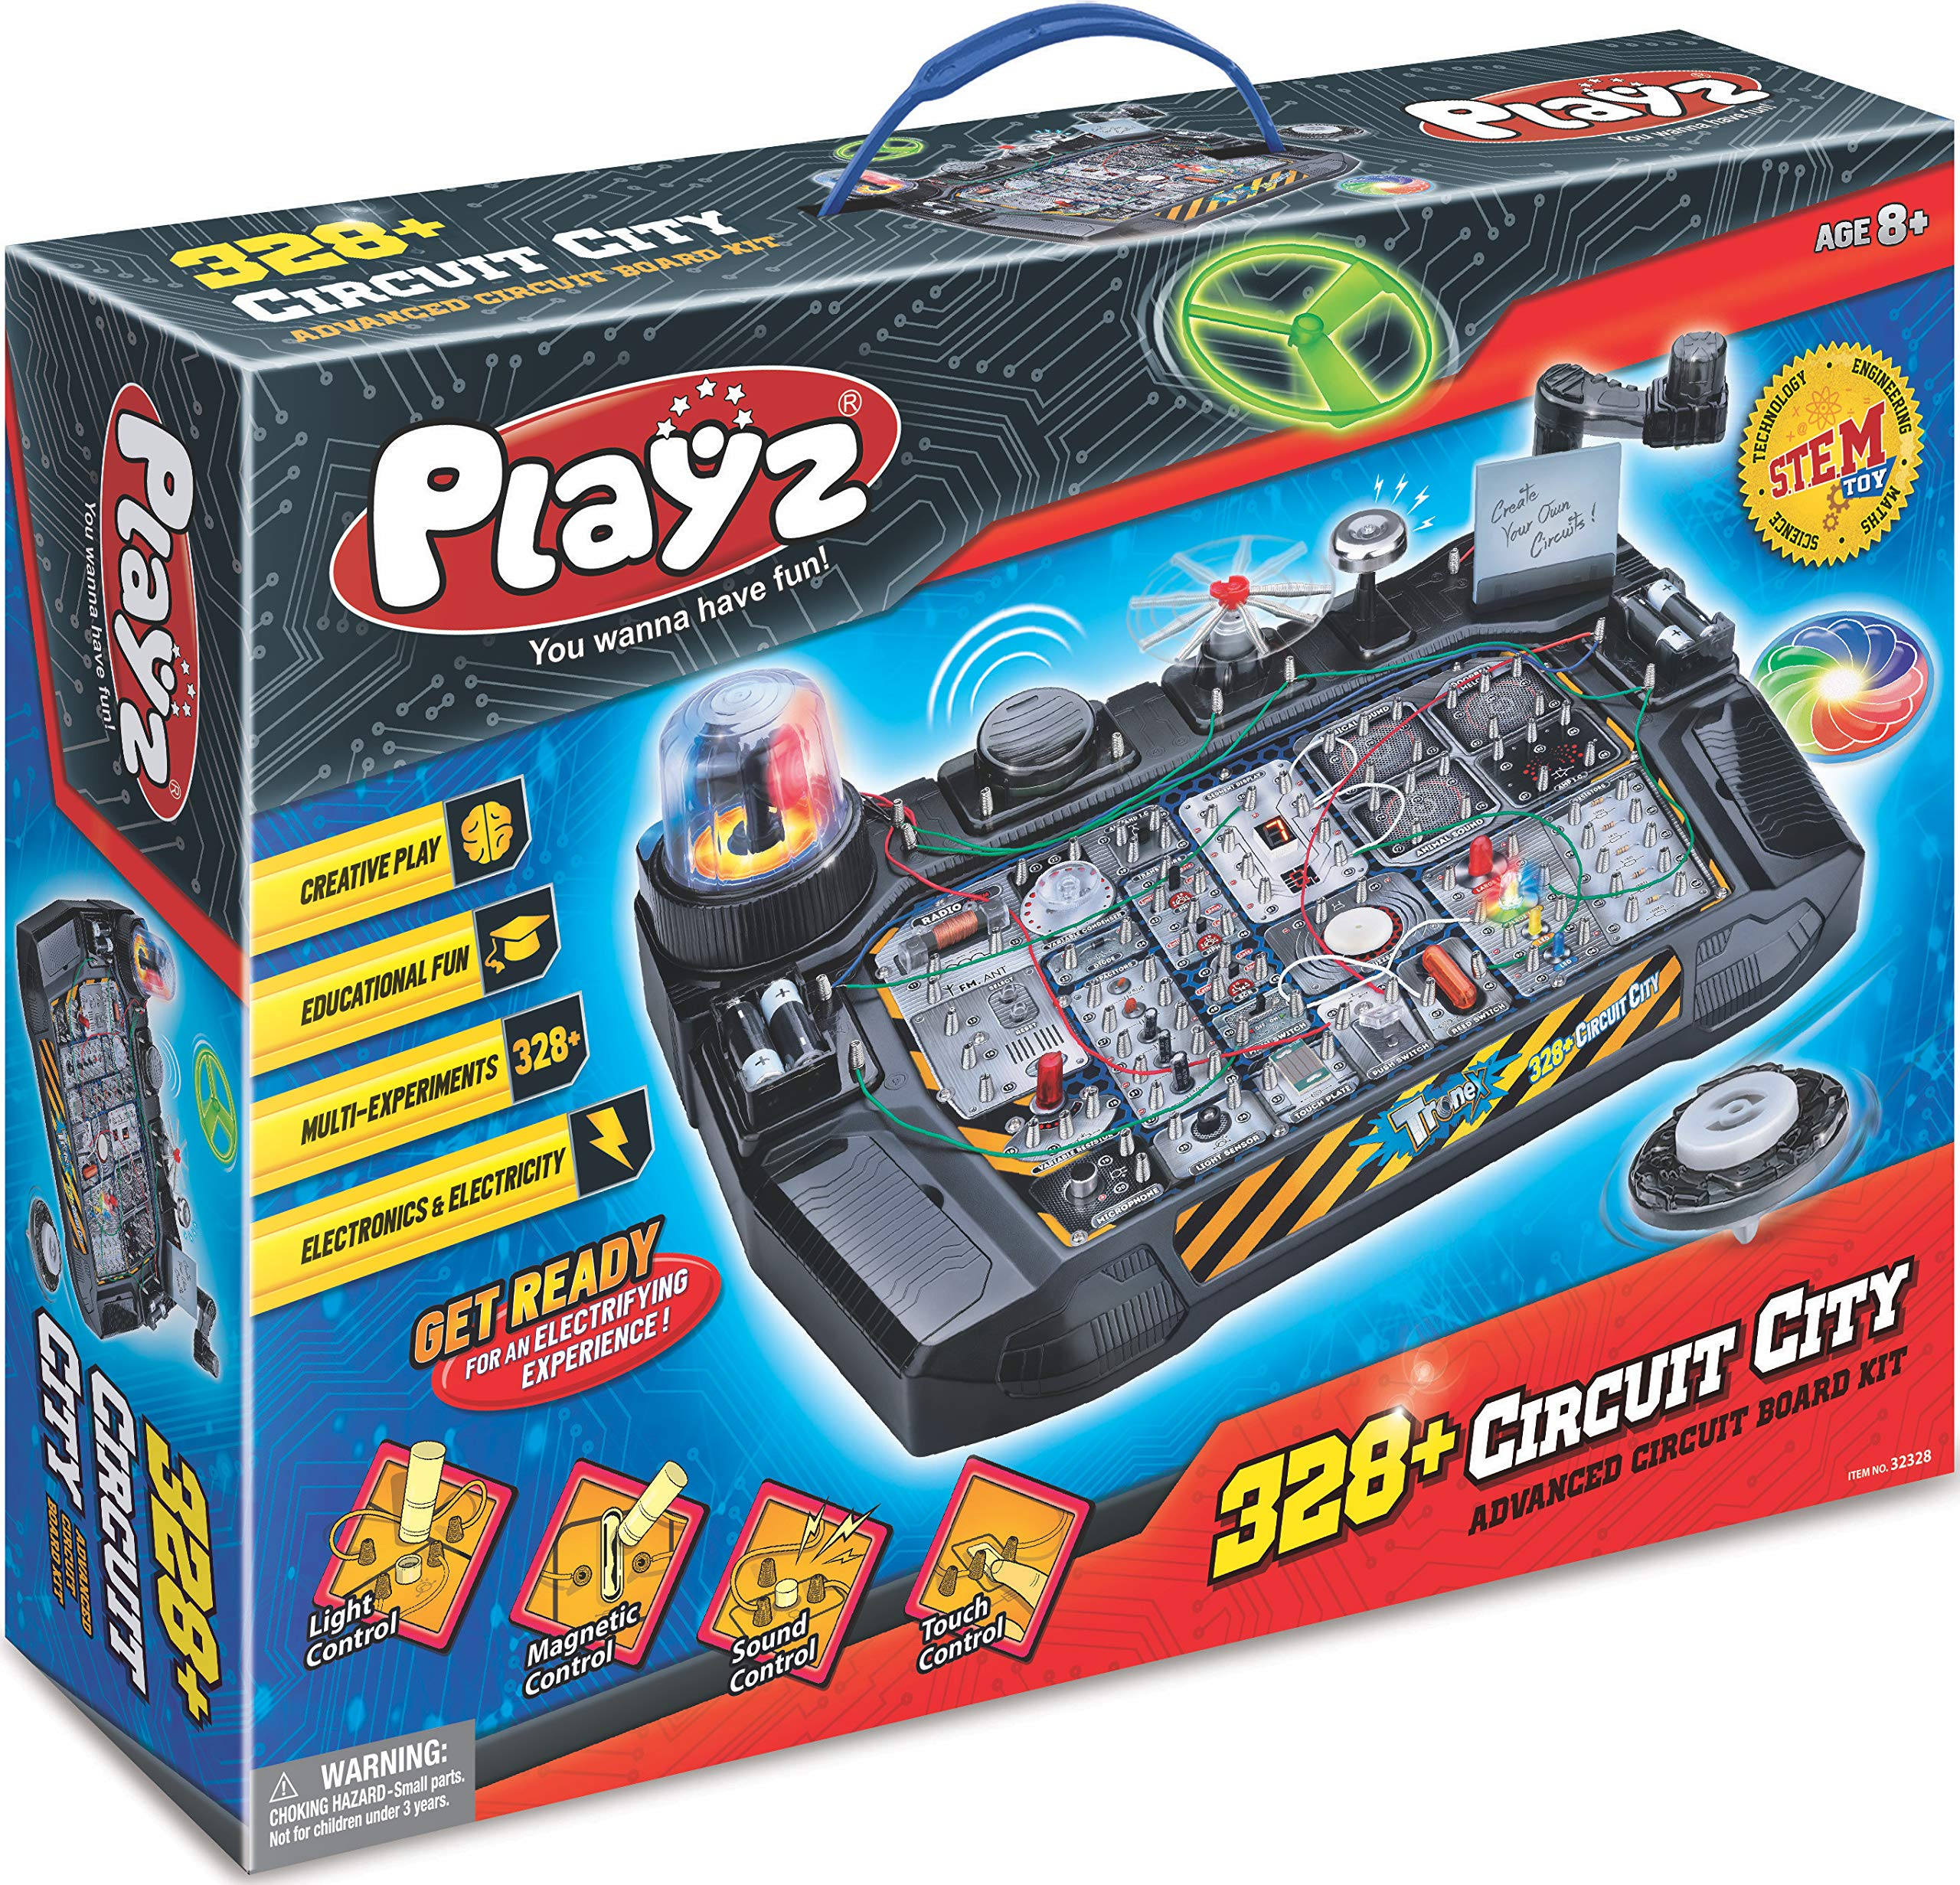 Playz Advanced Electronic Circuit Board Engineering Toy for Kids | 328+ Educational Experiments to Wire & Build Smart Connections Using Creative Knowledge of Electricity | Science Gift for Children by Playz (Image #1)